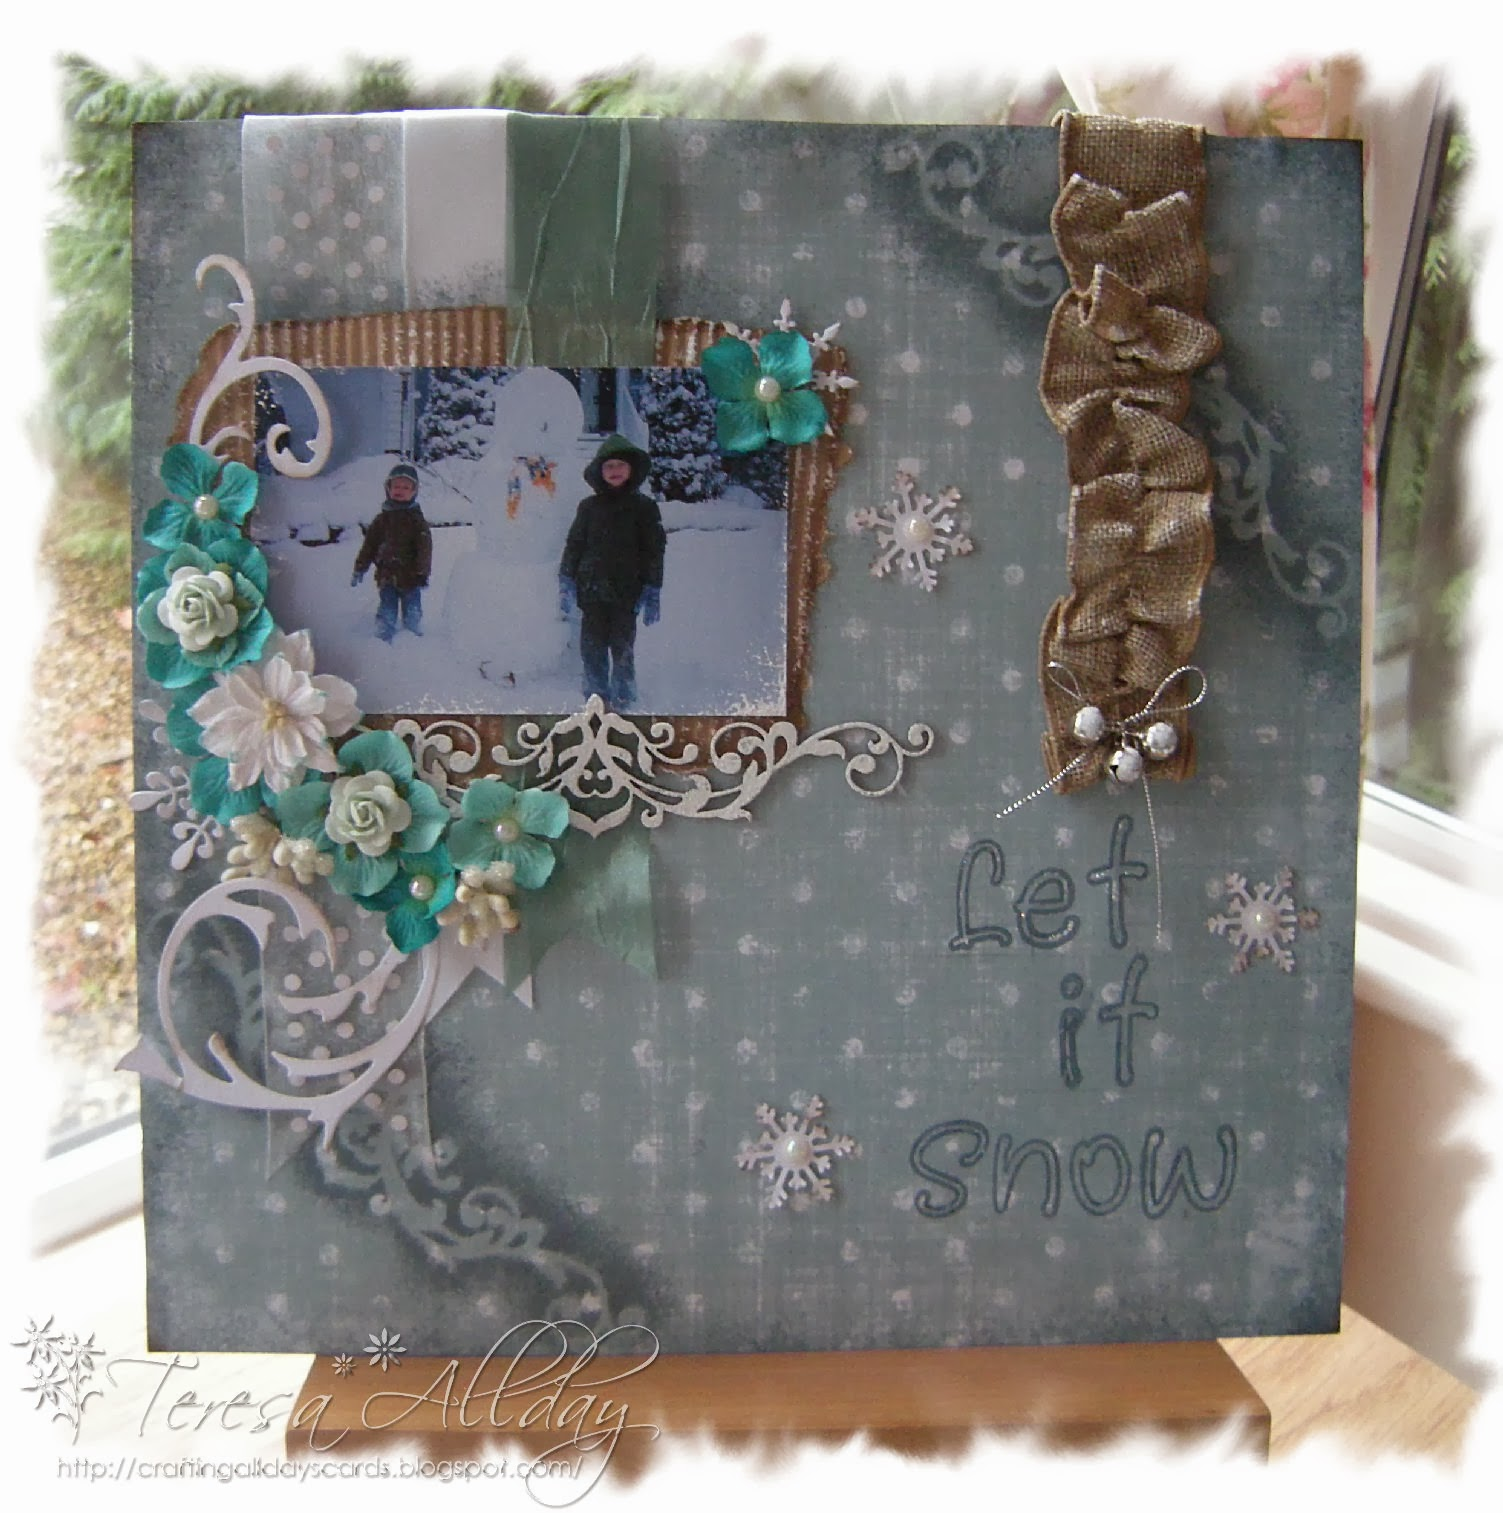 I won at Blue Fern Studios with this scrapbook page